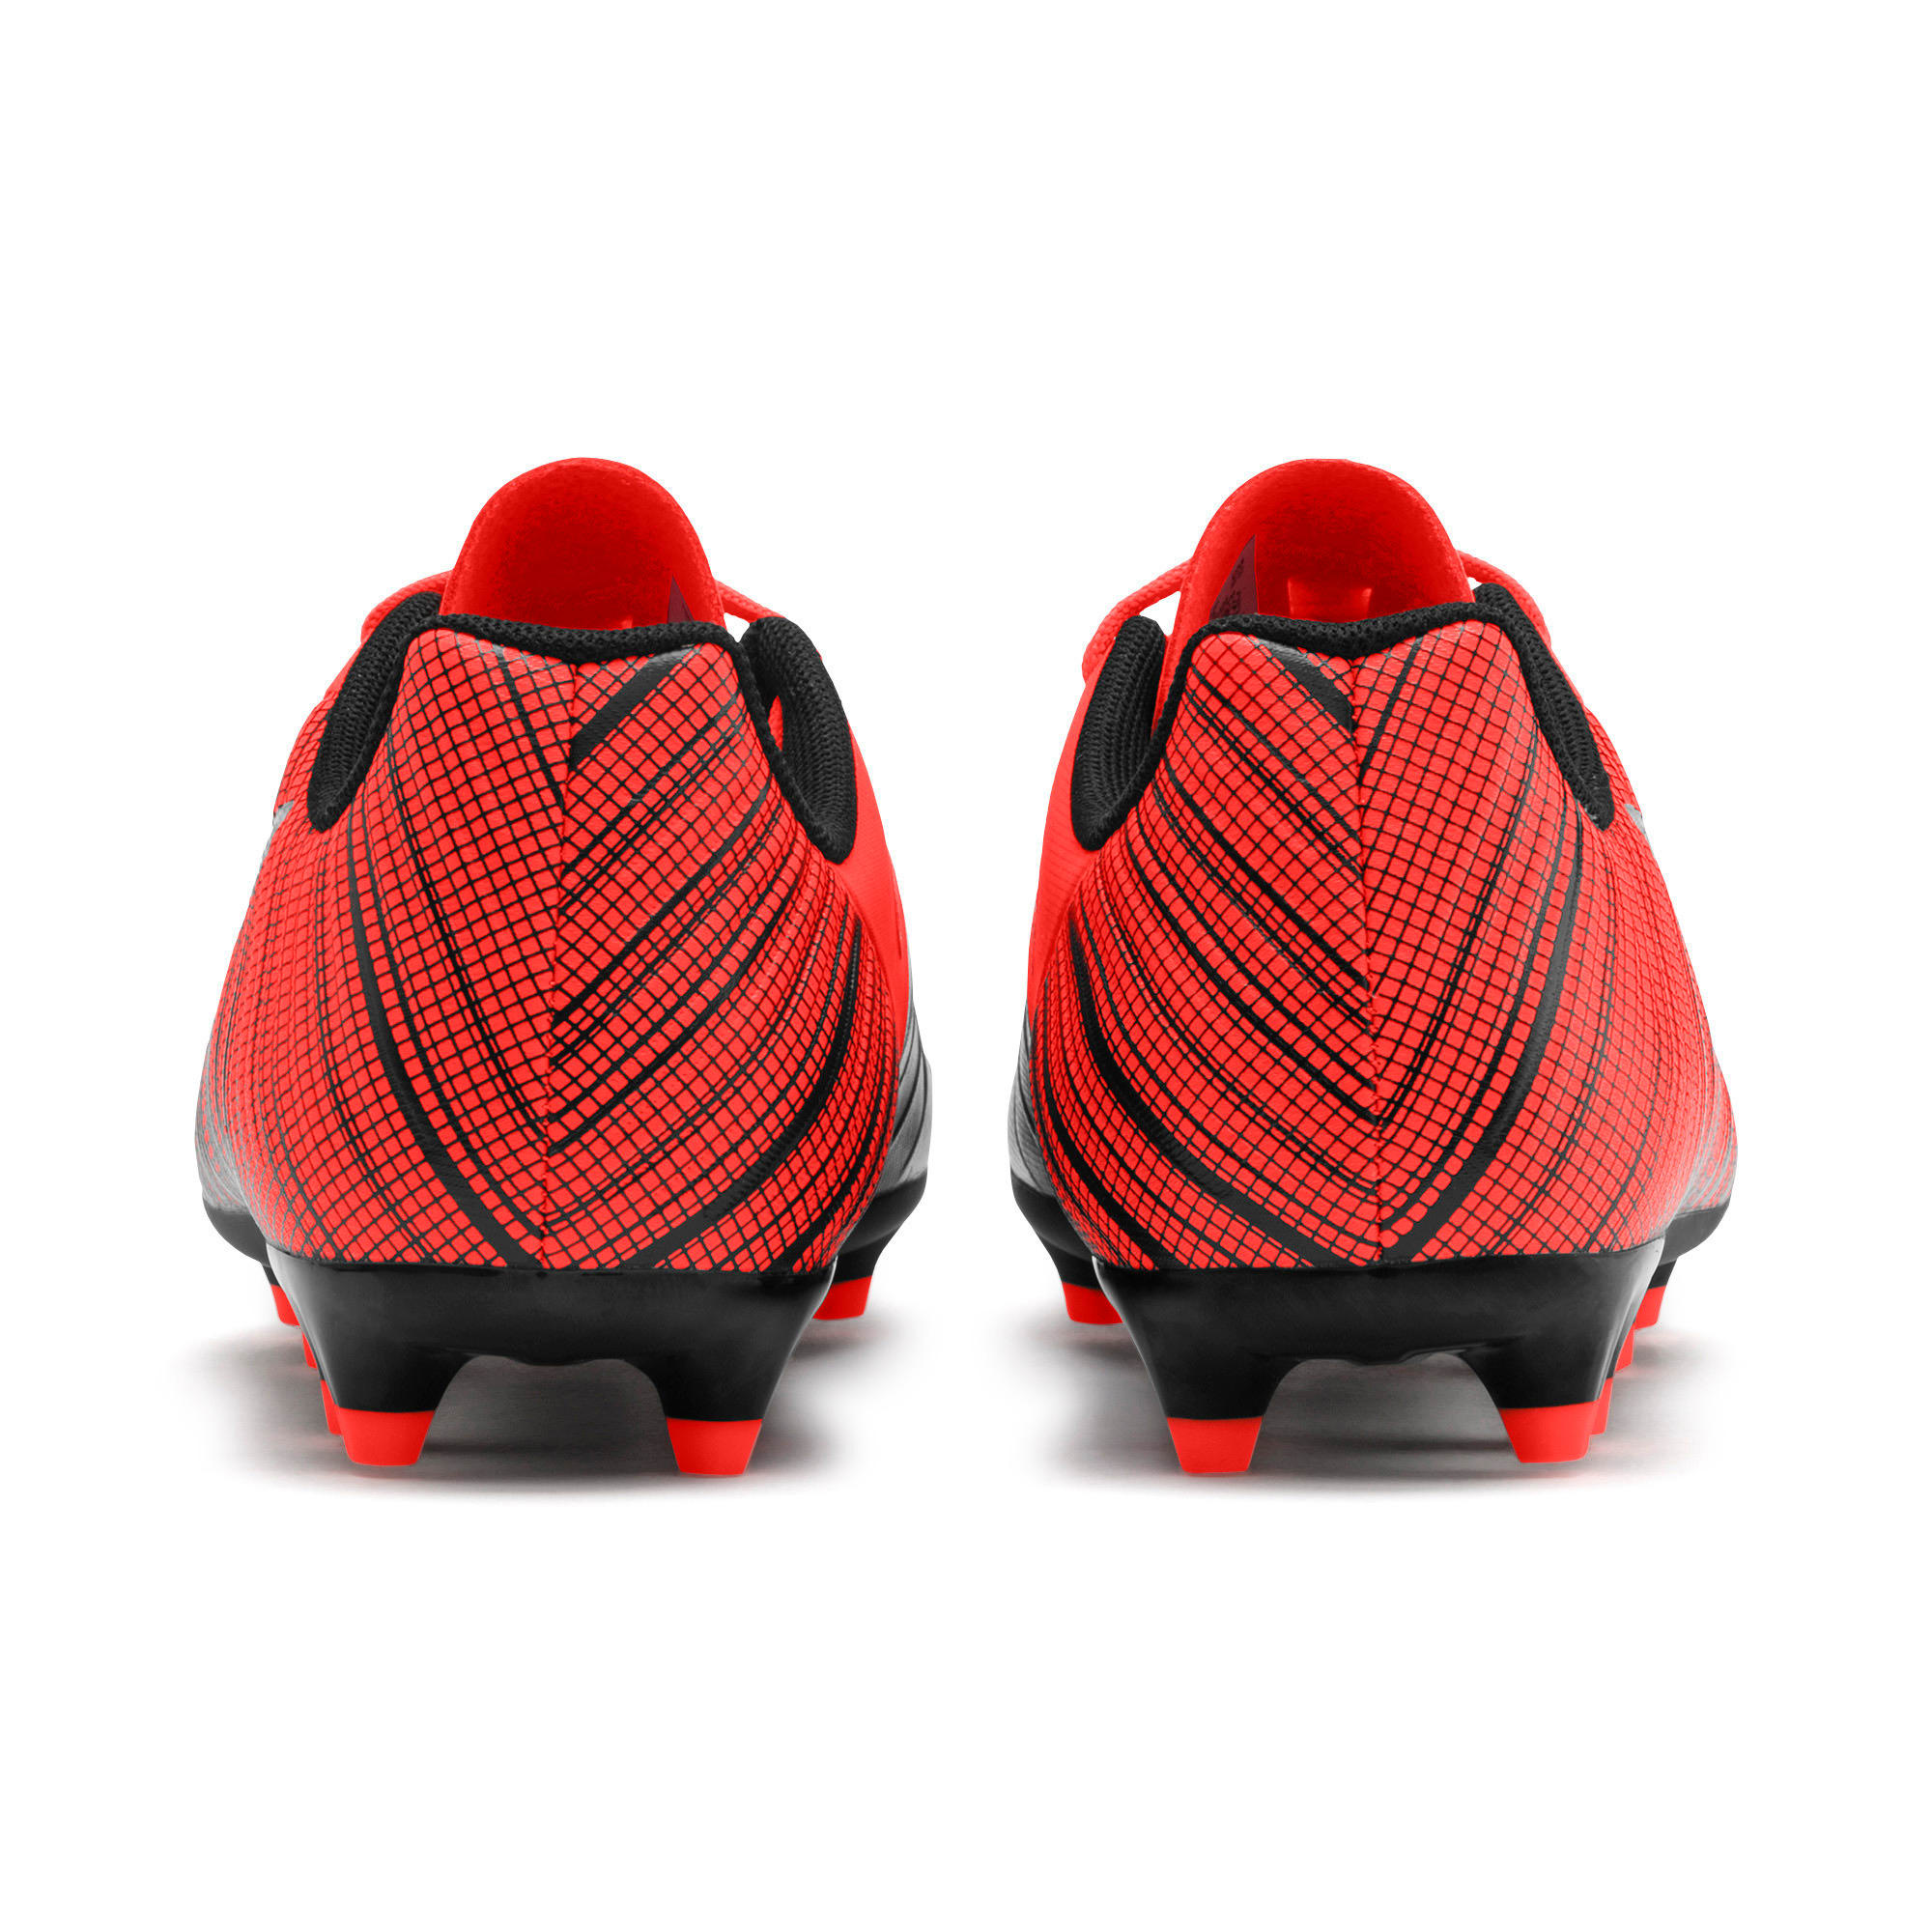 Thumbnail 3 of PUMA ONE 5.4 IT Youth Football Boots, Black-Nrgy Red-Aged Silver, medium-IND